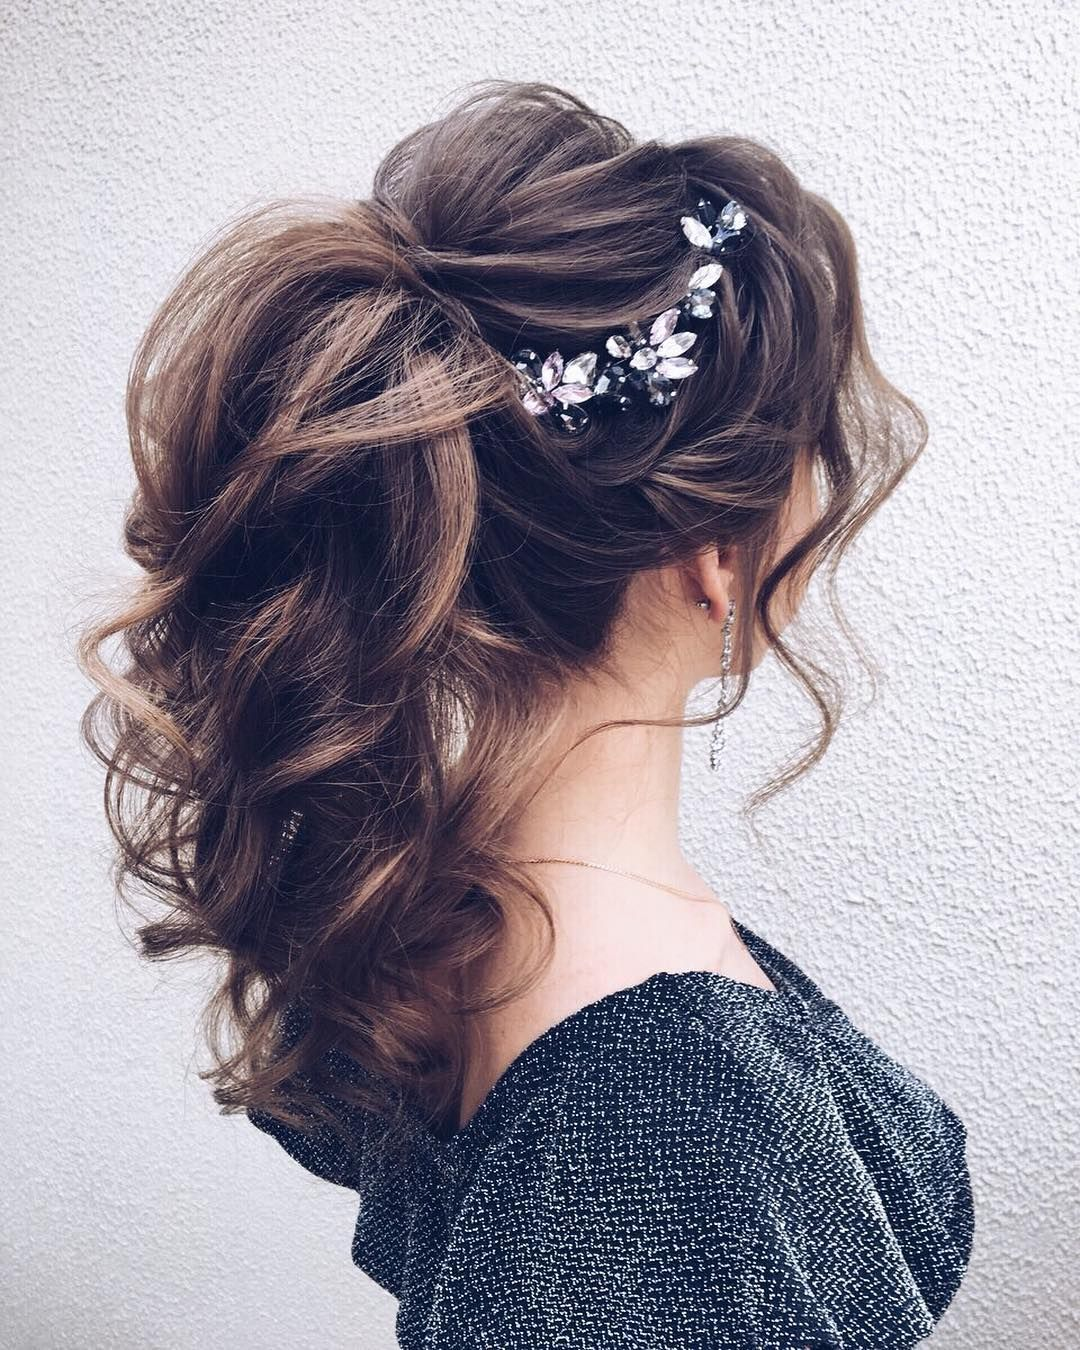 Beautiful Wedding Hairstyle For Long Hair Perfect For Any: 16+ Prodigious Girls Hairstyles Updos Ideas (con Imágenes